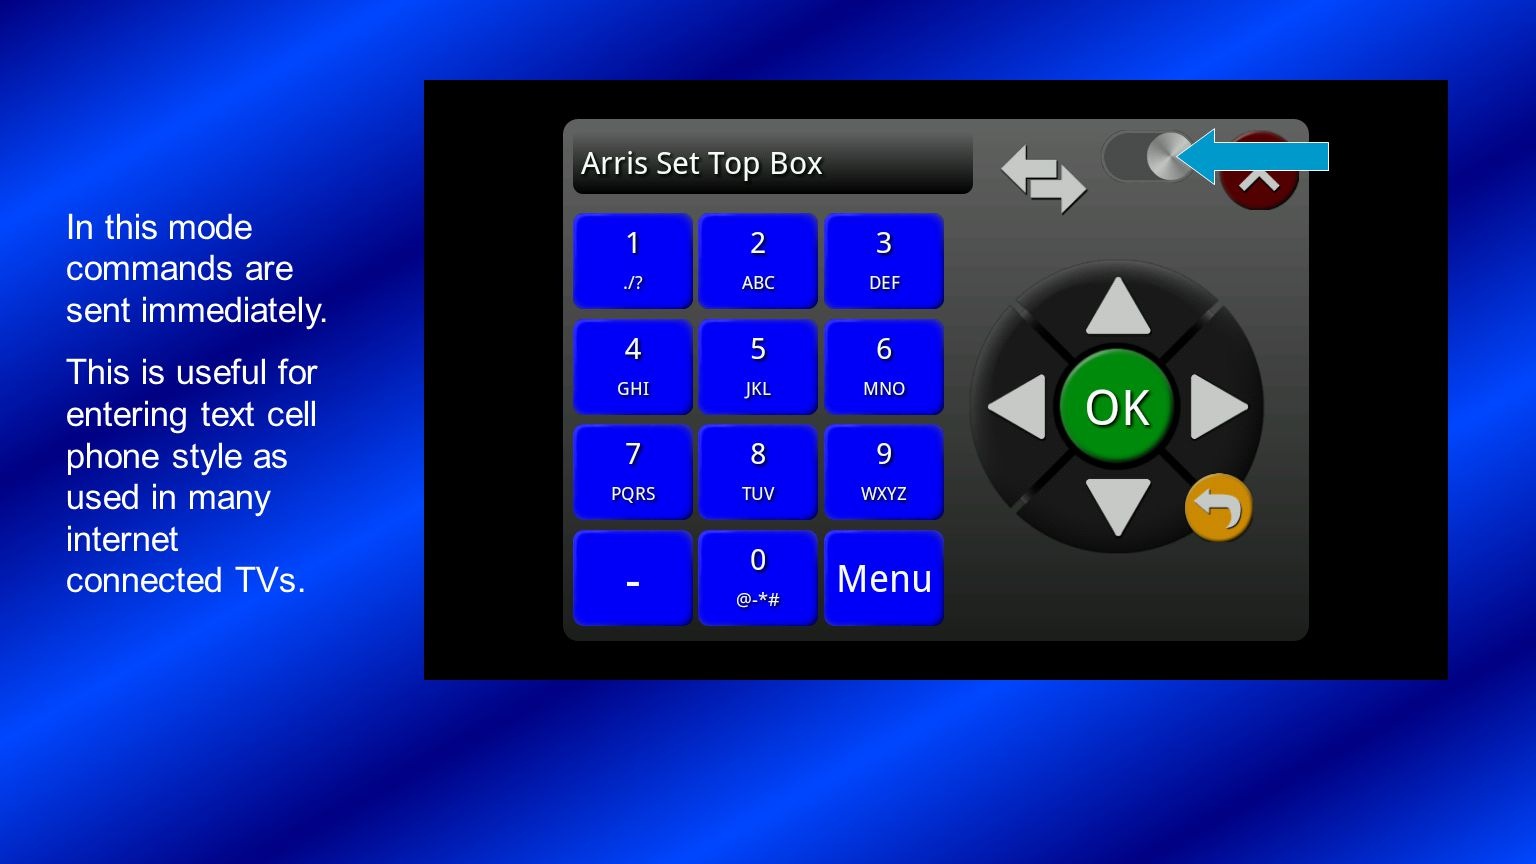 In this mode commands are sent immediately. This is useful for entering text cell phone style as used in many internet connected TVs.